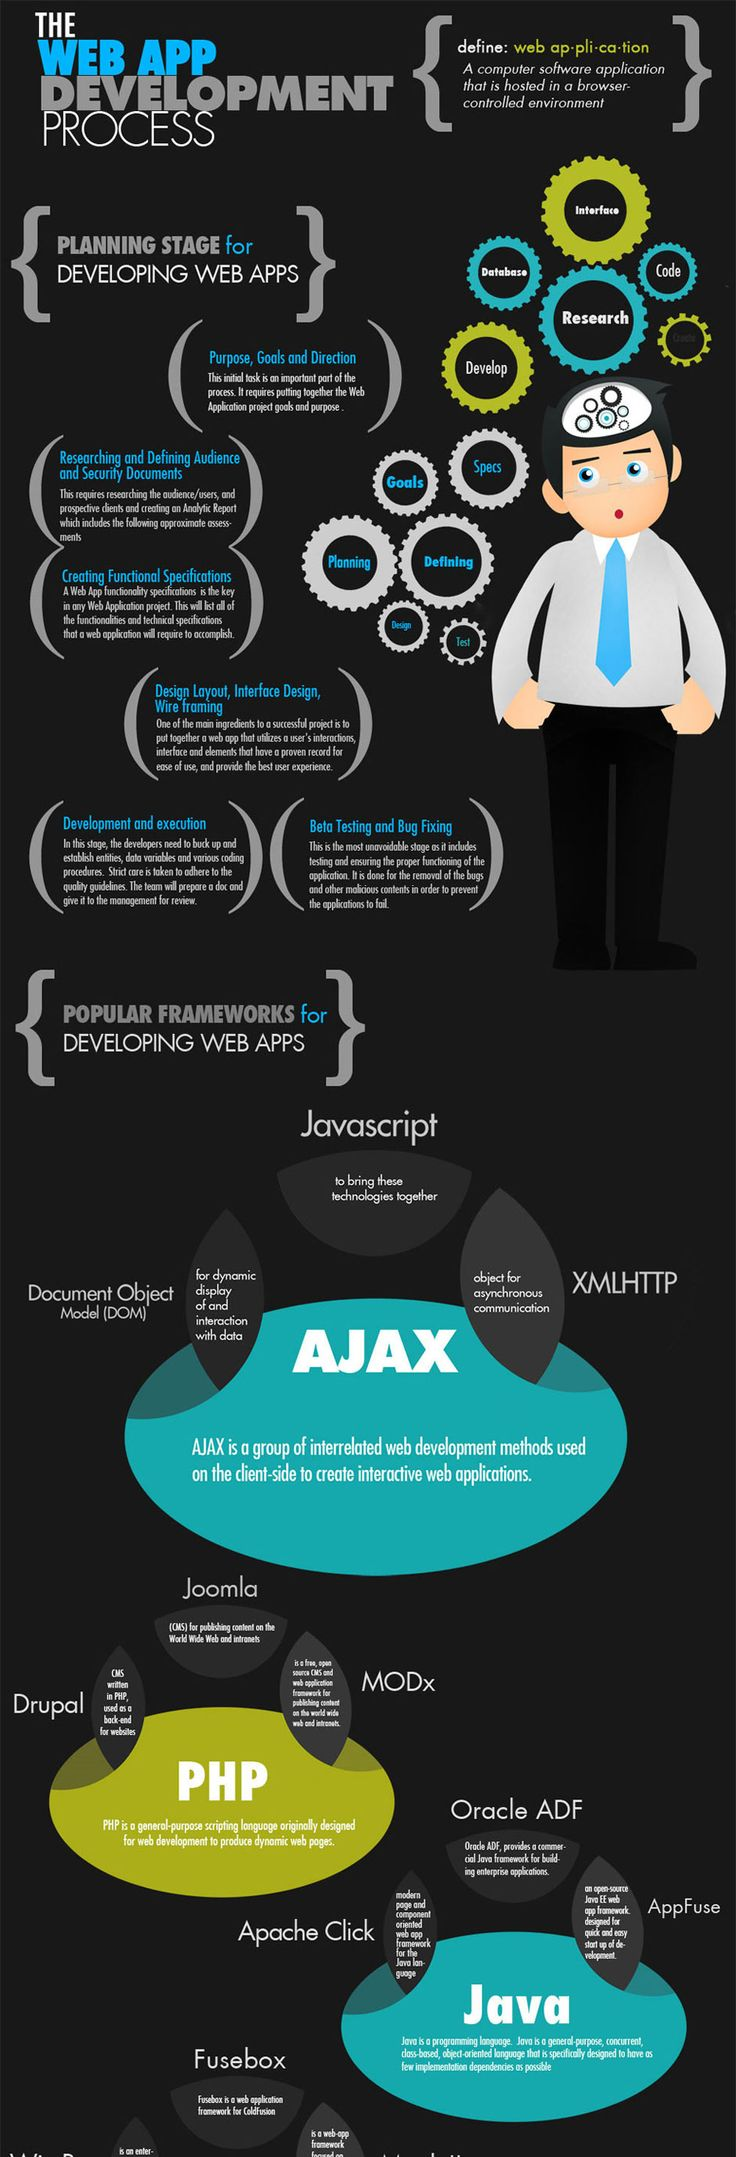 In this info-graphic you will learn all the terminology and essential info about web development, its resources and most of the relevant stuff. You must have a look at this info-graphic if you are professionally associated with web in any sort of way.